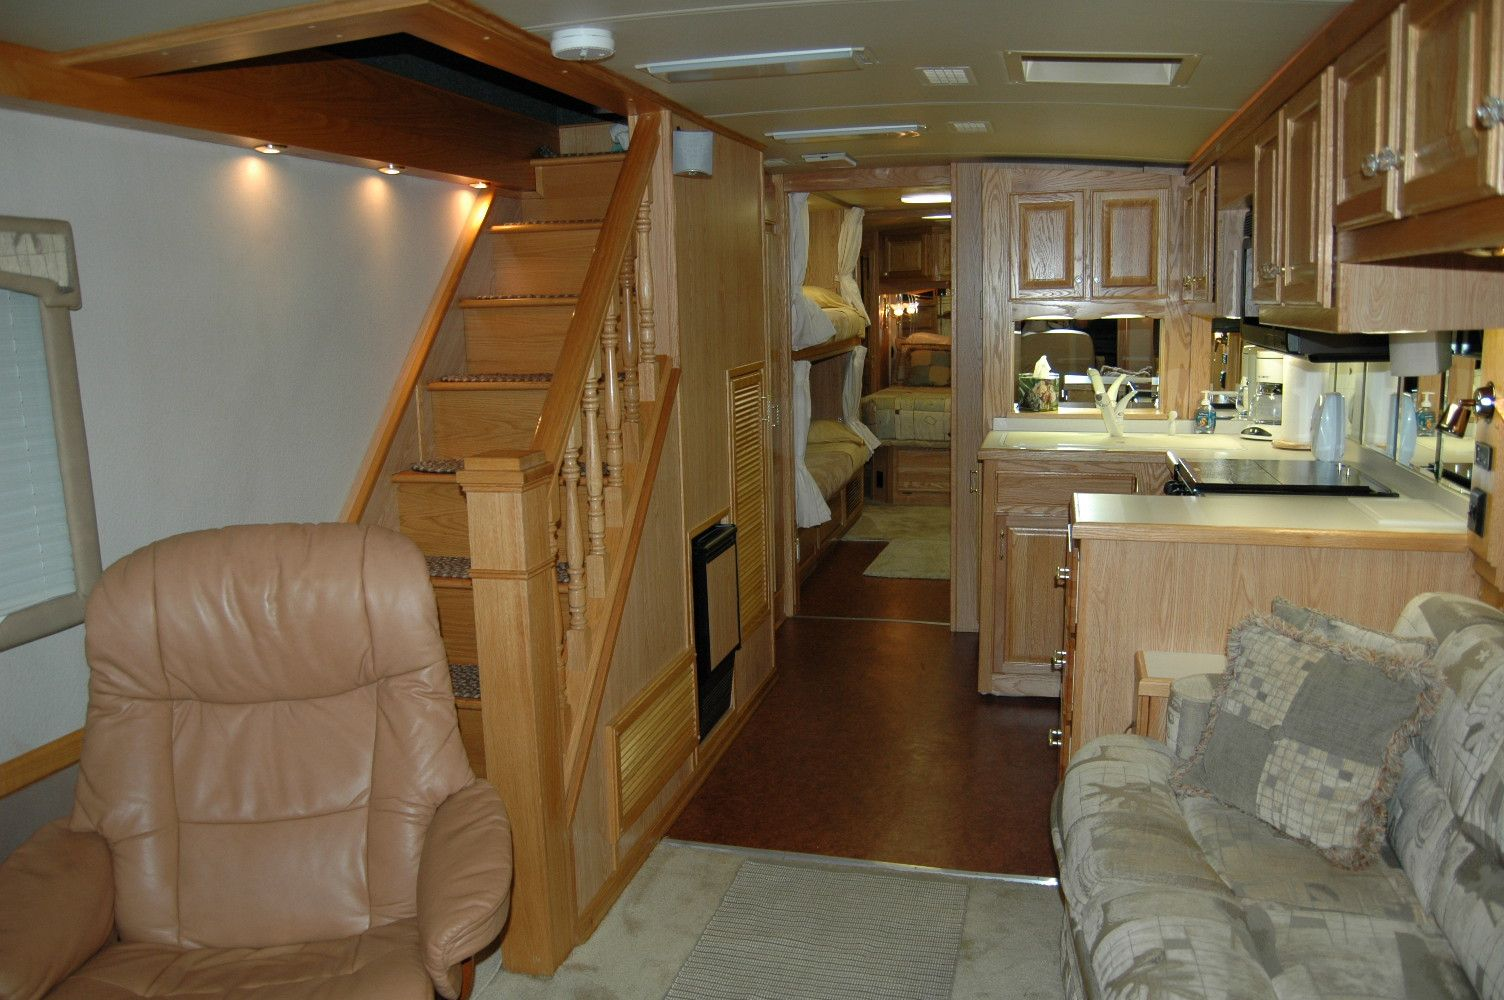 Rv Pictures Inside Fancy Related Keywords Suggestions Rv Bedrooms Pinterest Rv